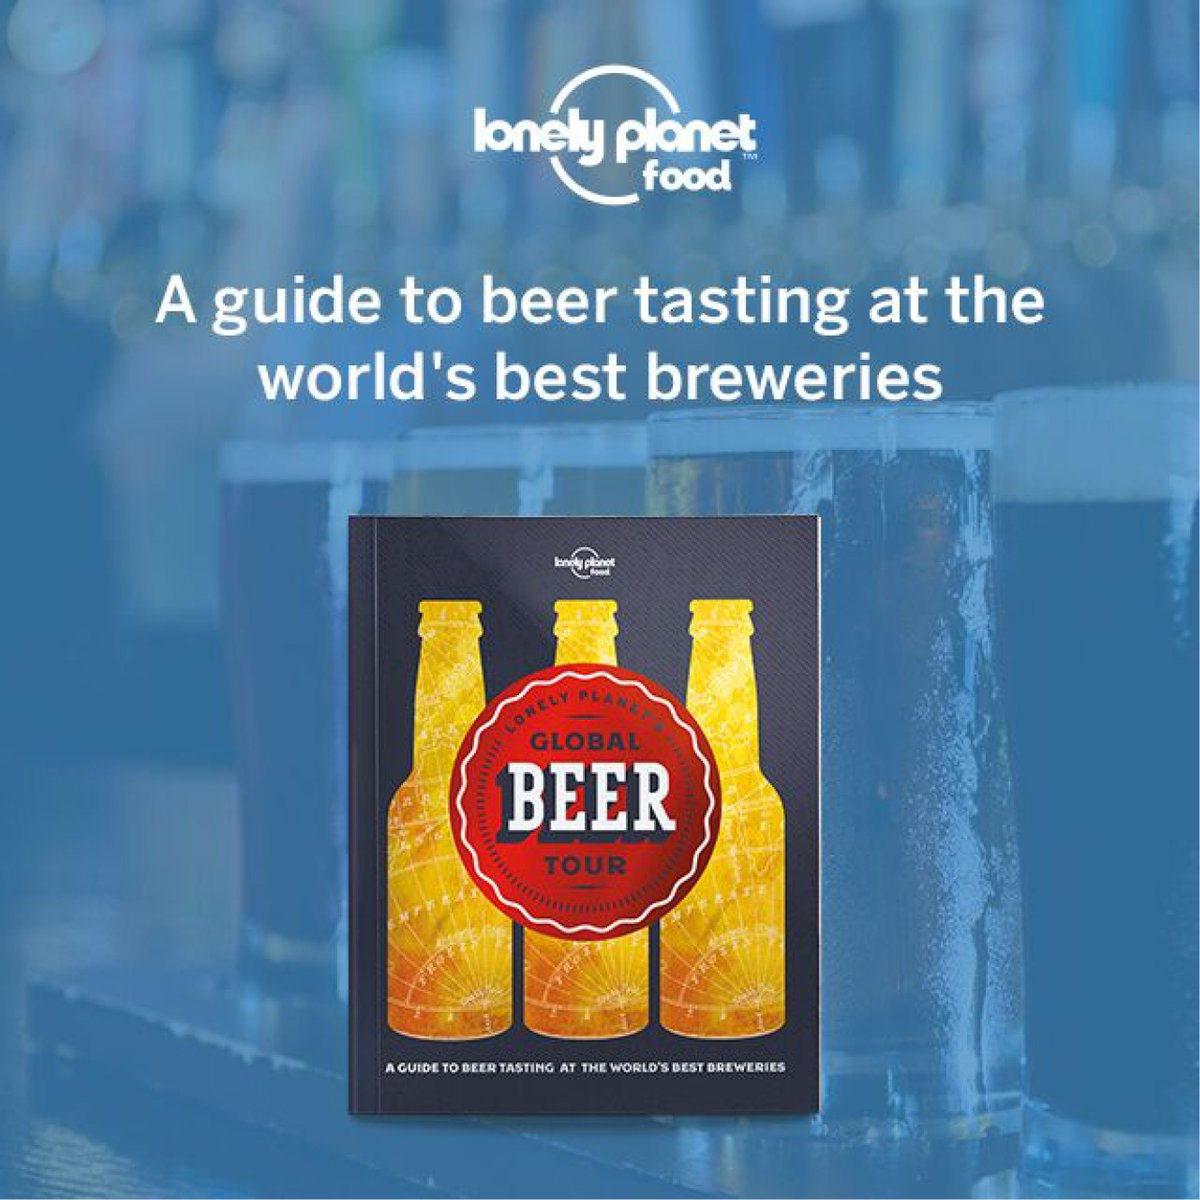 RT &amp; follow #win a copy of @lonelyplanet #GlobalBeerTour head to our blog for all the info  http:// bit.ly/2rCEck0  &nbsp;   #beer #travel #breweries<br>http://pic.twitter.com/8M8VjRMYD6